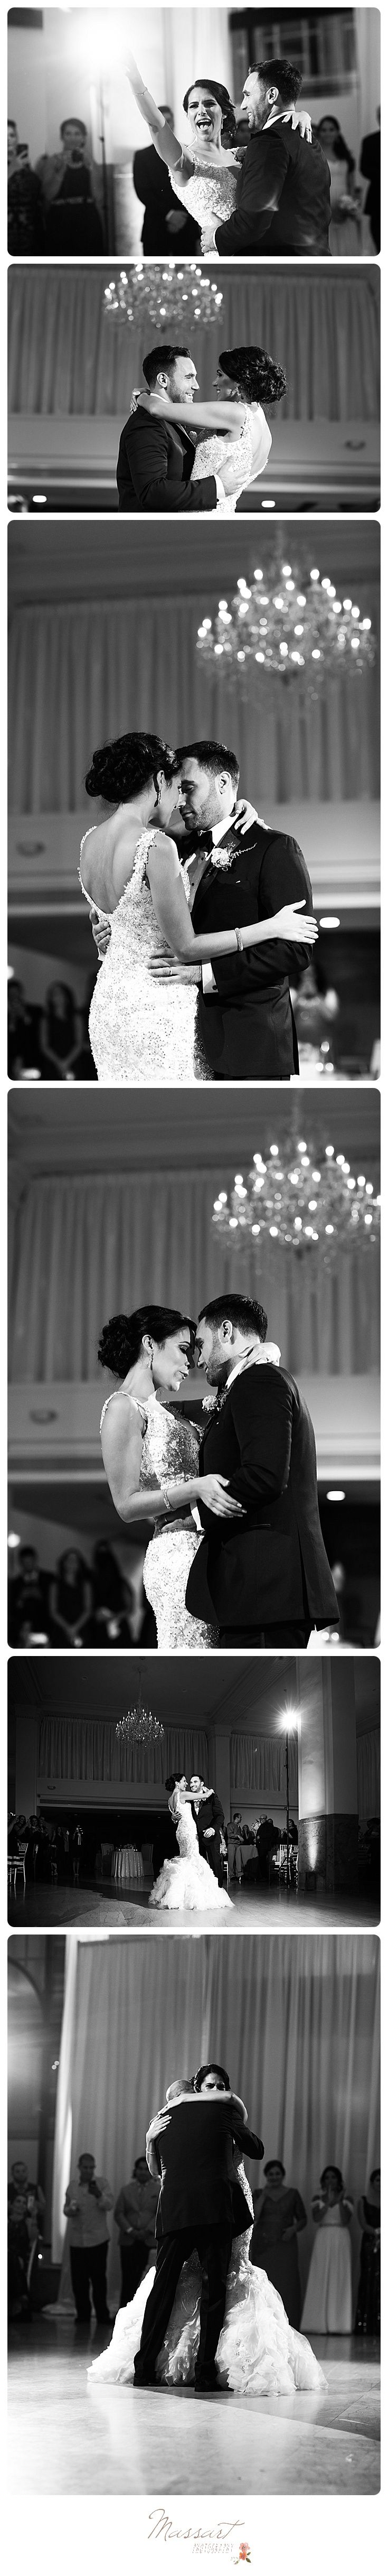 Black and white first dance photos of bride and groom at their wedding reception photographed by Massart Photography of Warwick, RI.   www.massartphotography.com; info@massartphotography.com